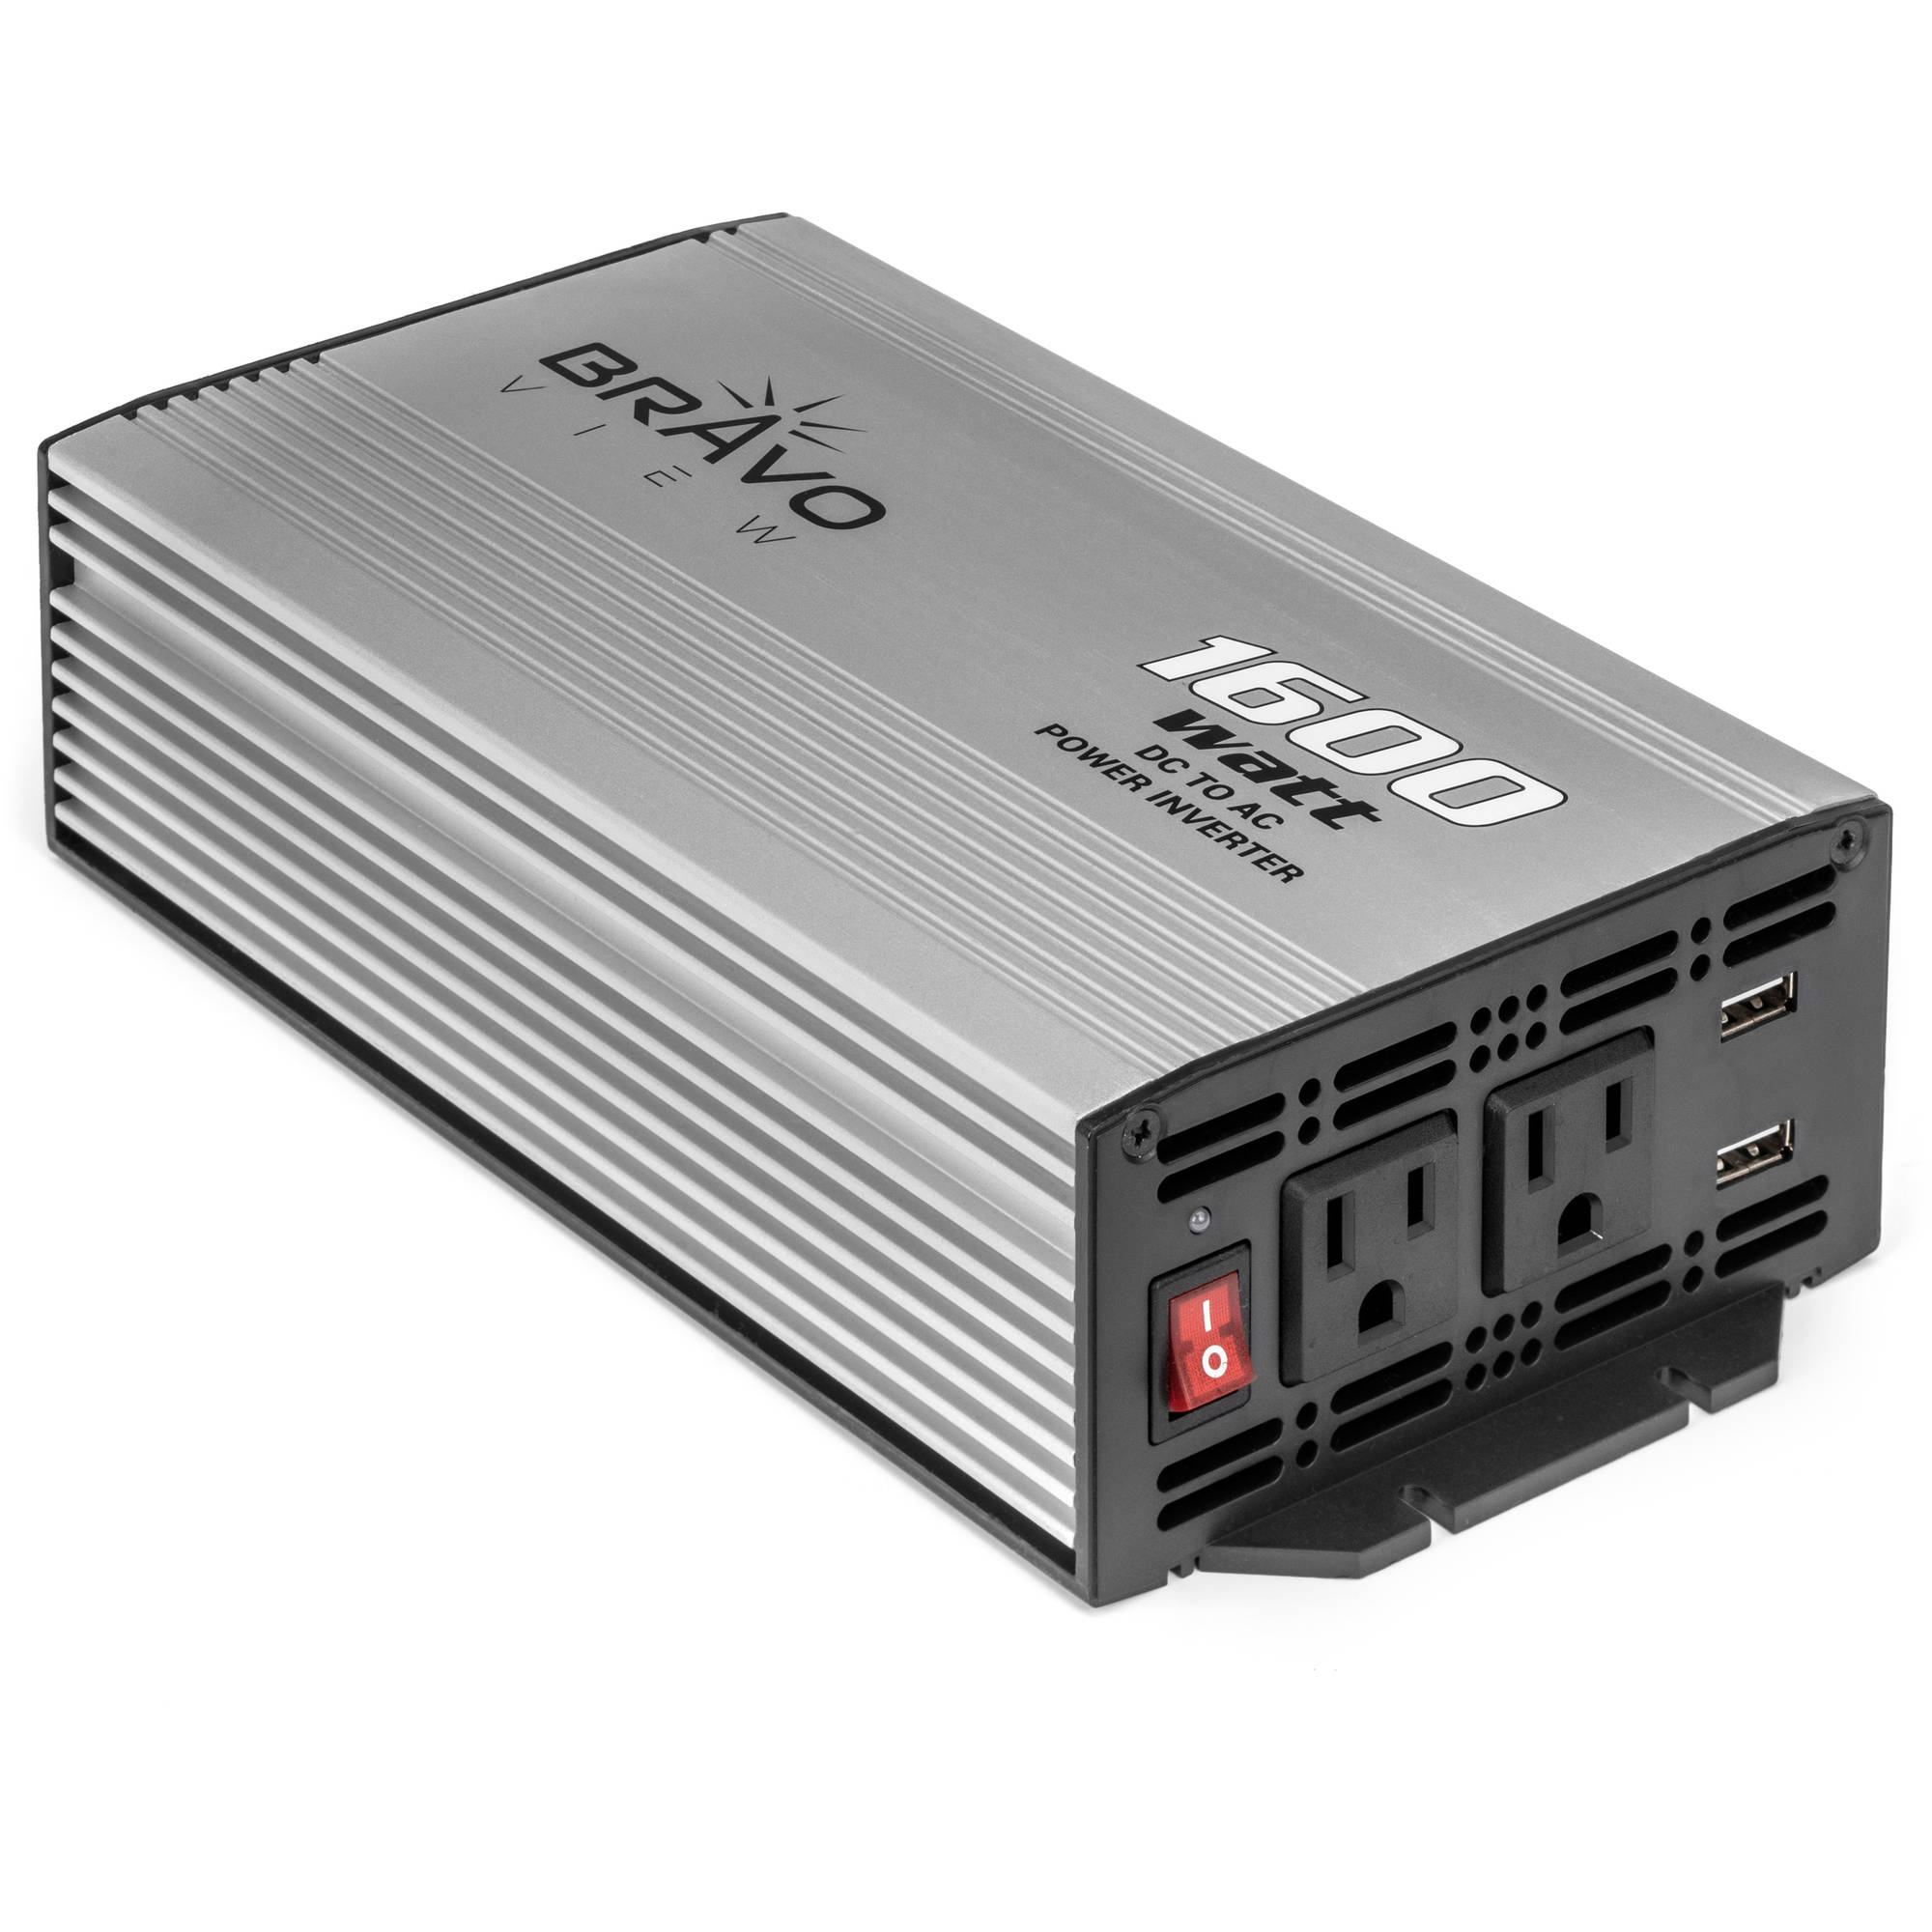 Bravo View INV-1600U – 800-Watt Power Inverter with Dual USB Charging (1600 Watt Surge)